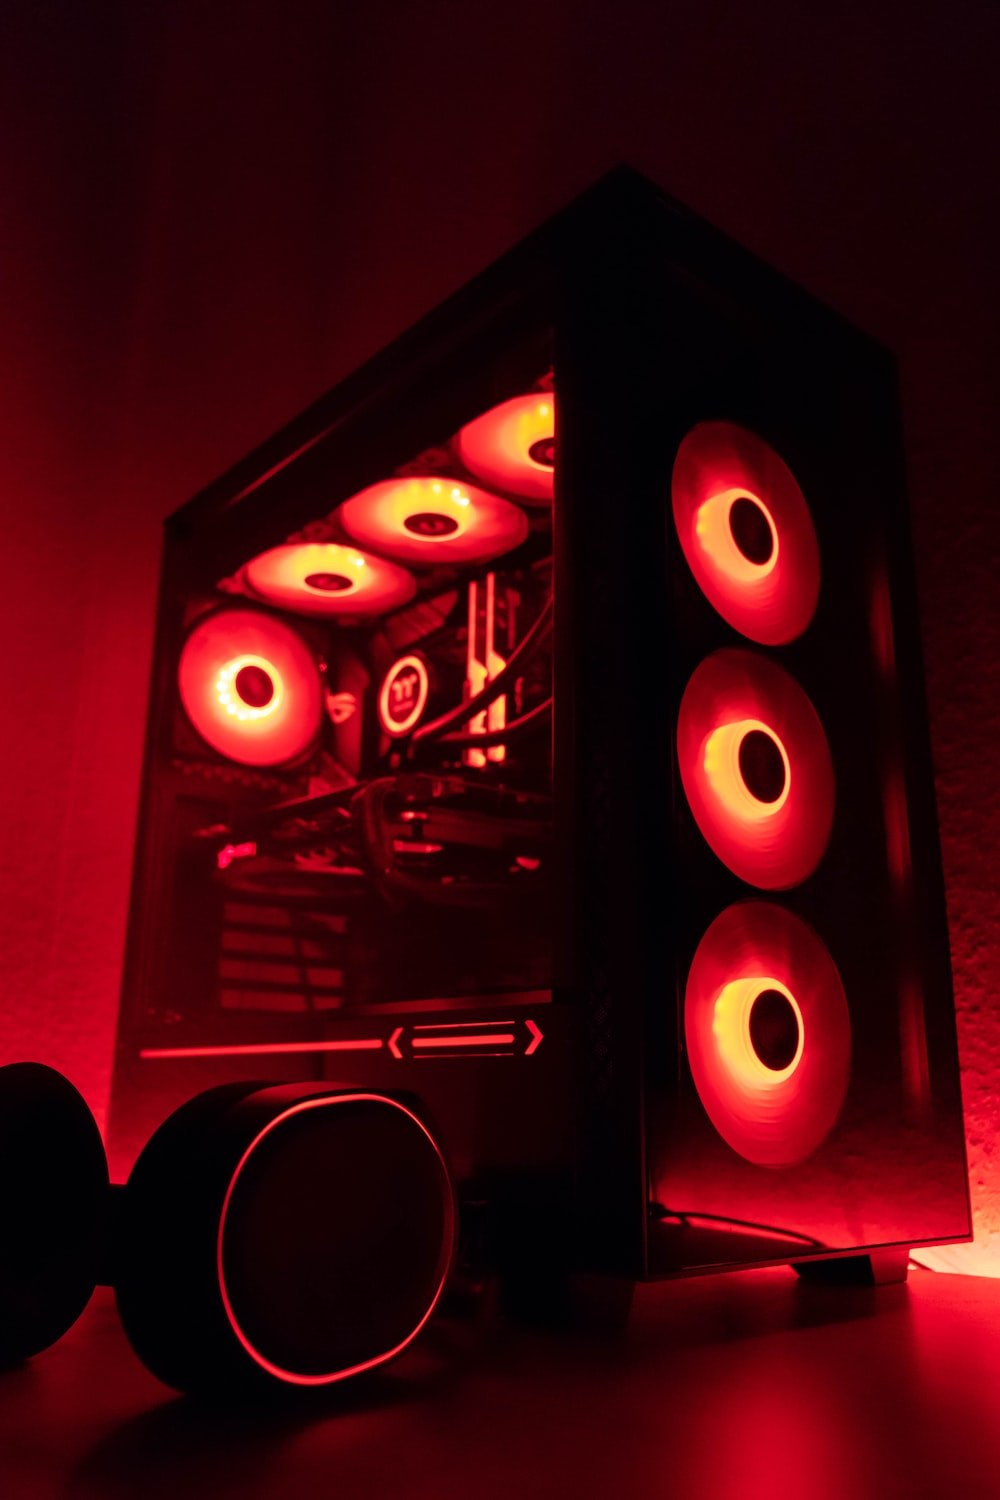 Red And Black Lighted Wall Decor Photo Free Light Image On Unsplash